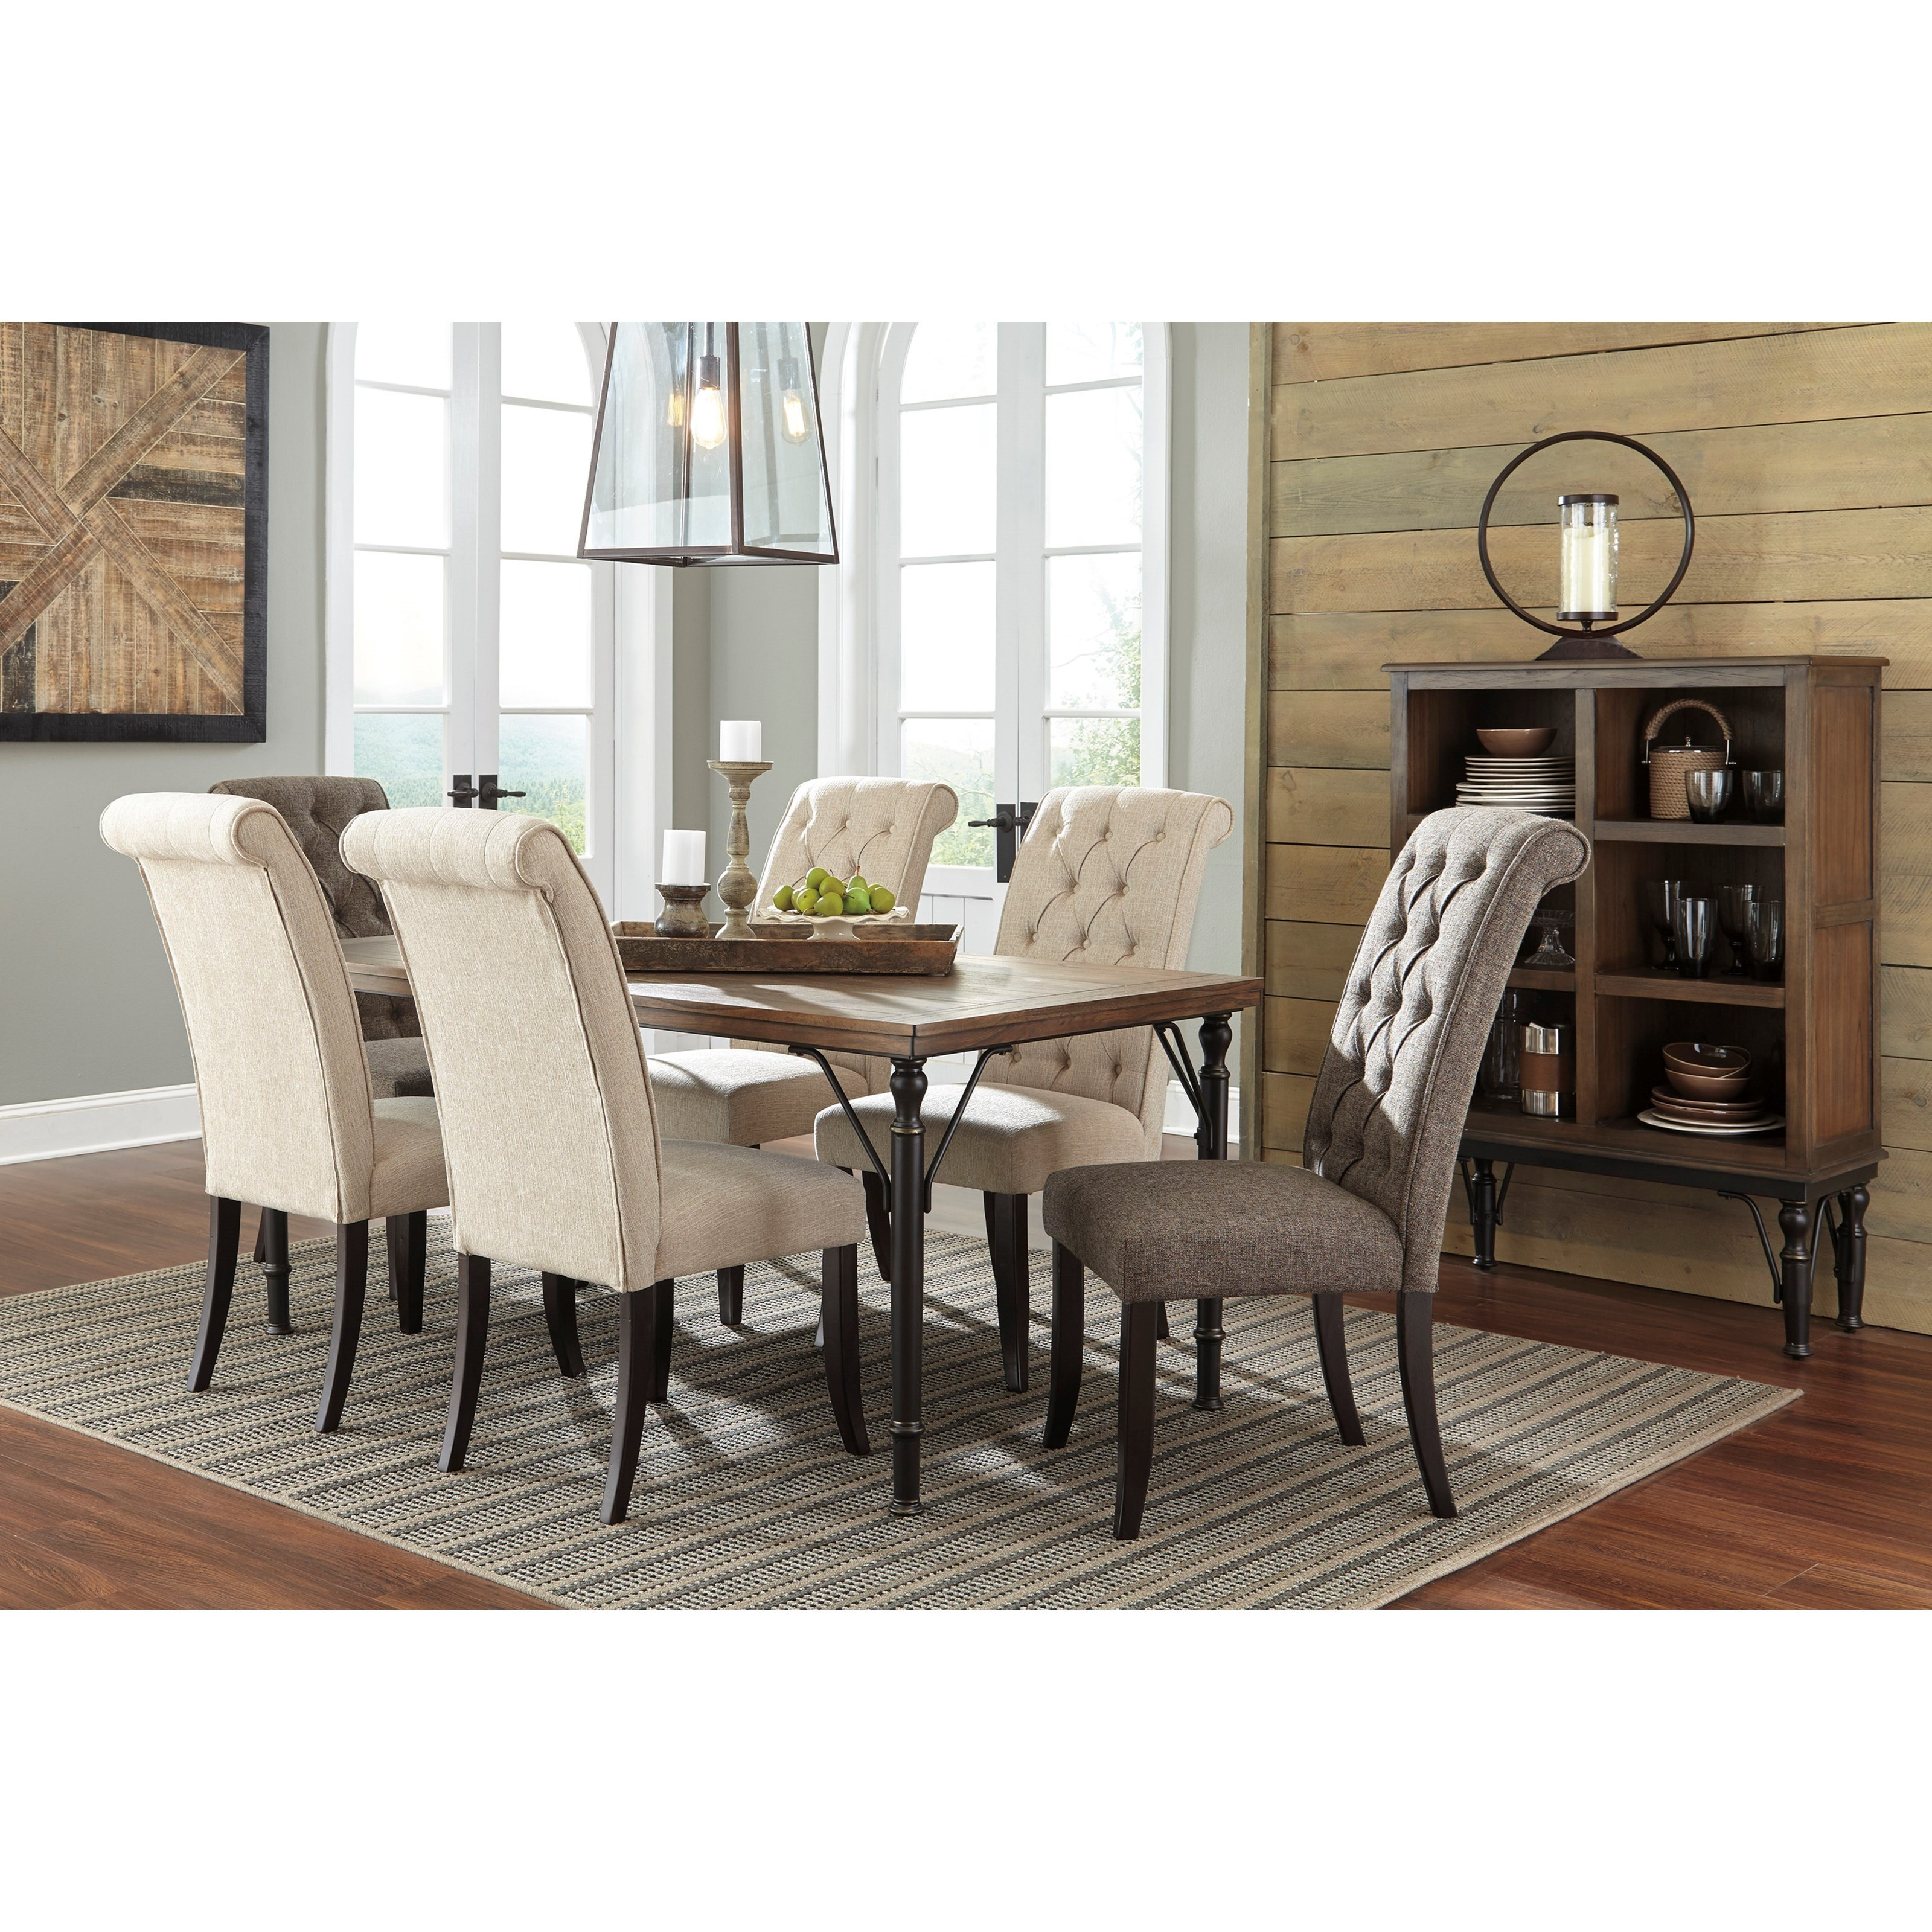 Signature Design By Ashley Tripton D530-02 Dining